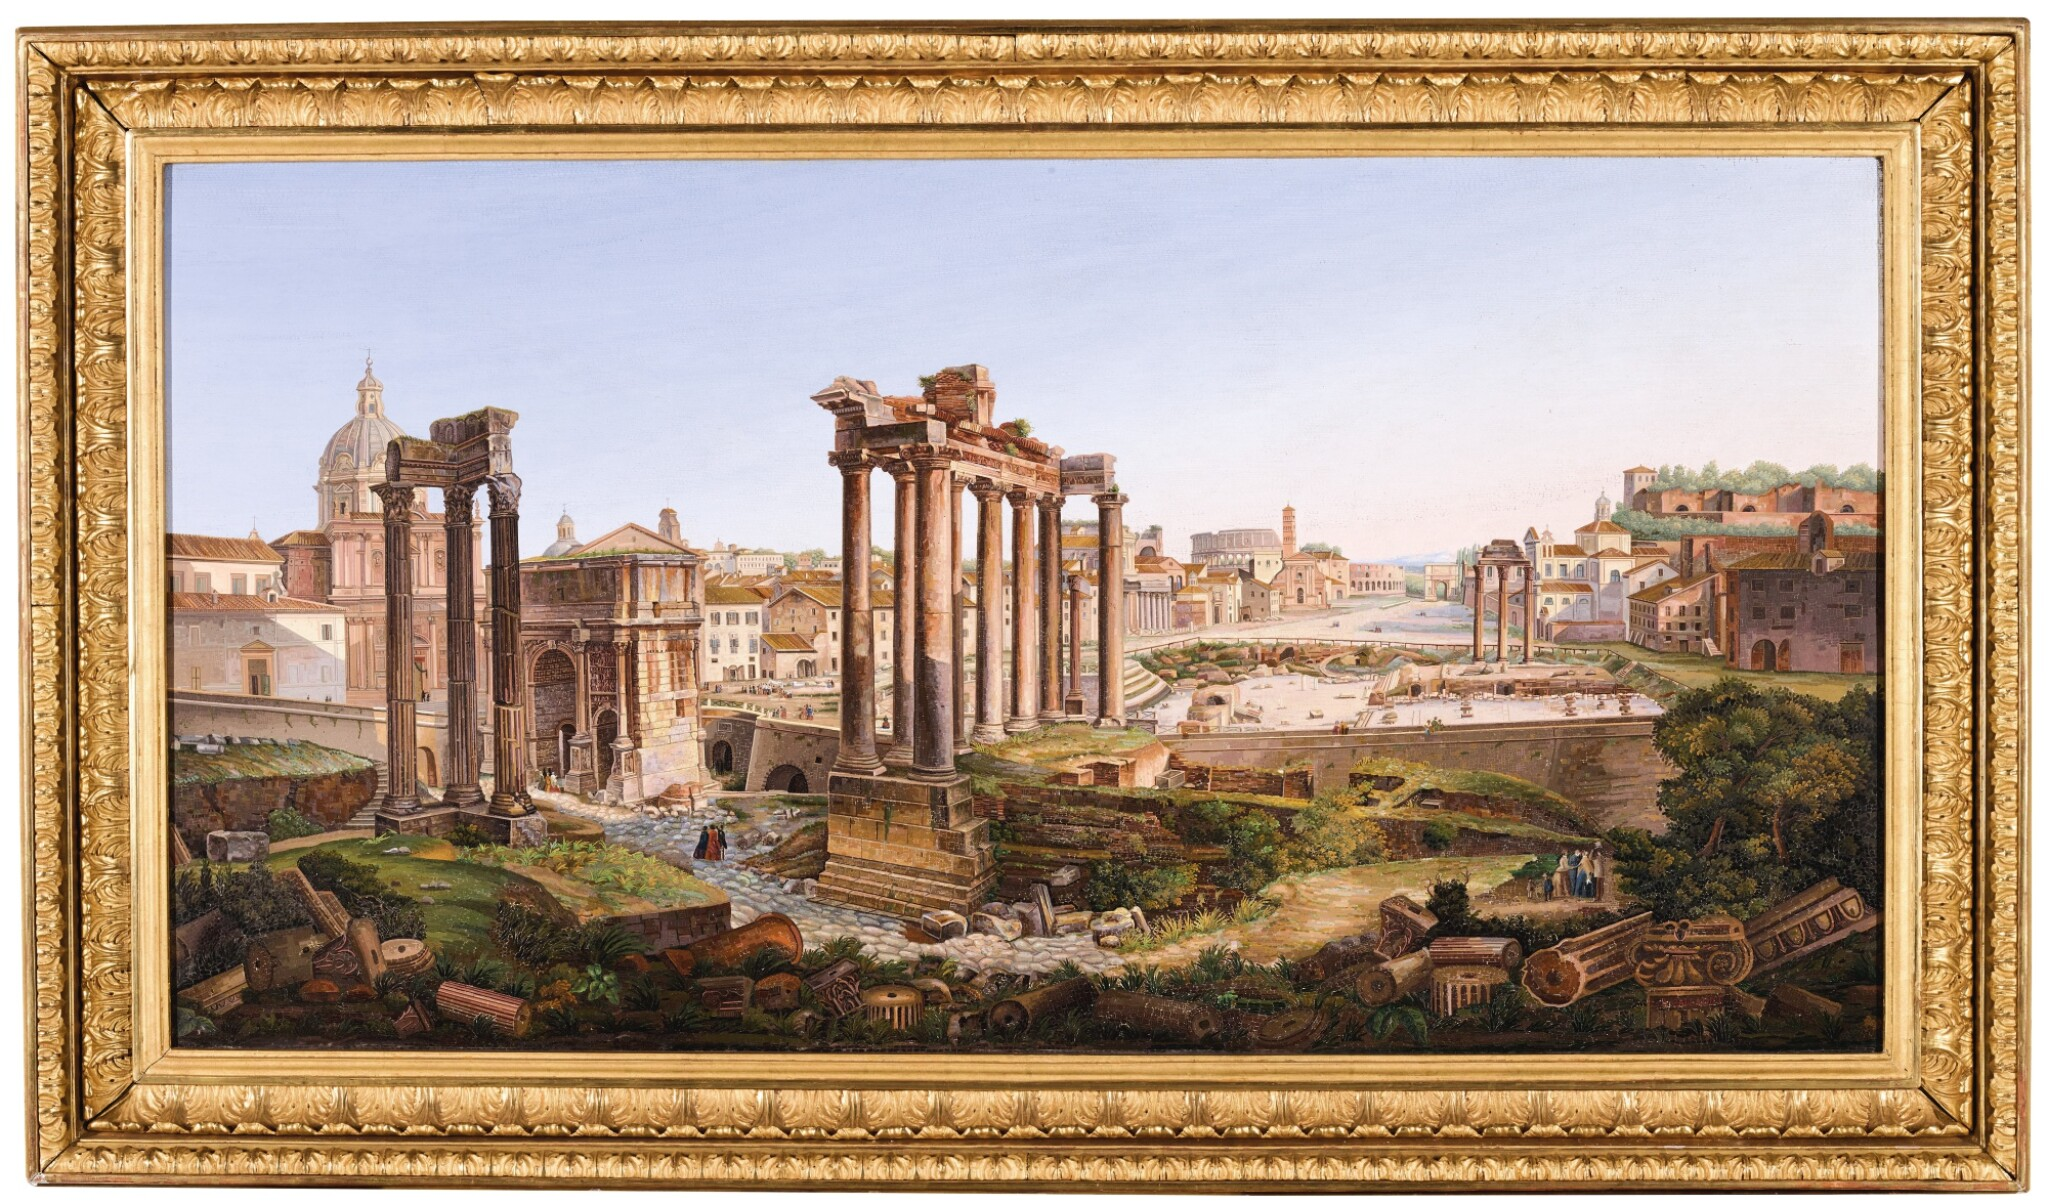 A LARGE SCALE ITALIAN MICROMOSAIC PANEL OF THE ROMAN FORUM, ROME CIRCA 1850-75, BY LUIGI A. GALLANDT